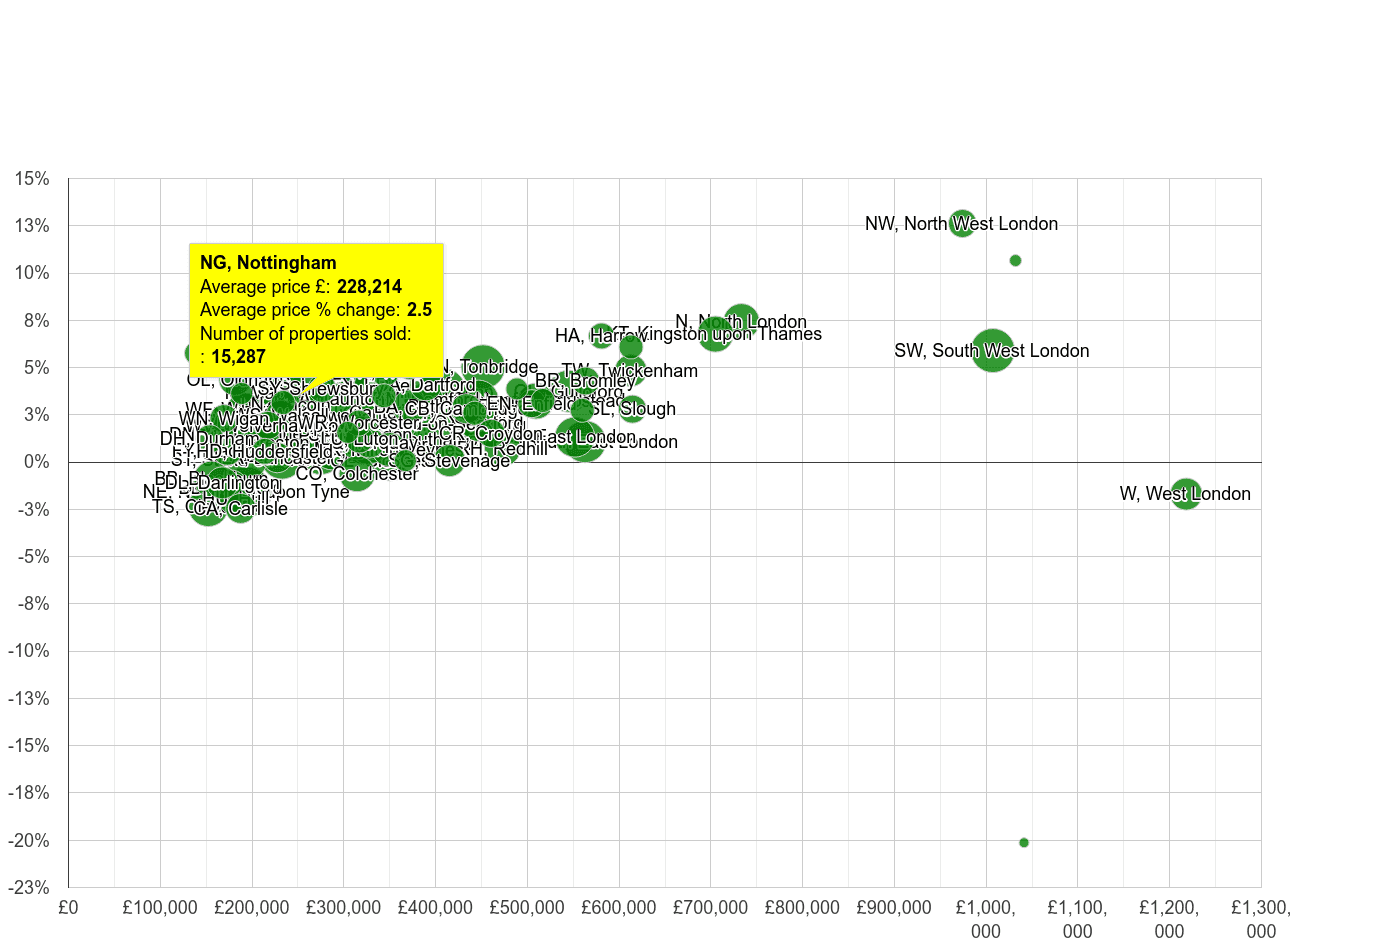 Nottingham house prices compared to other areas